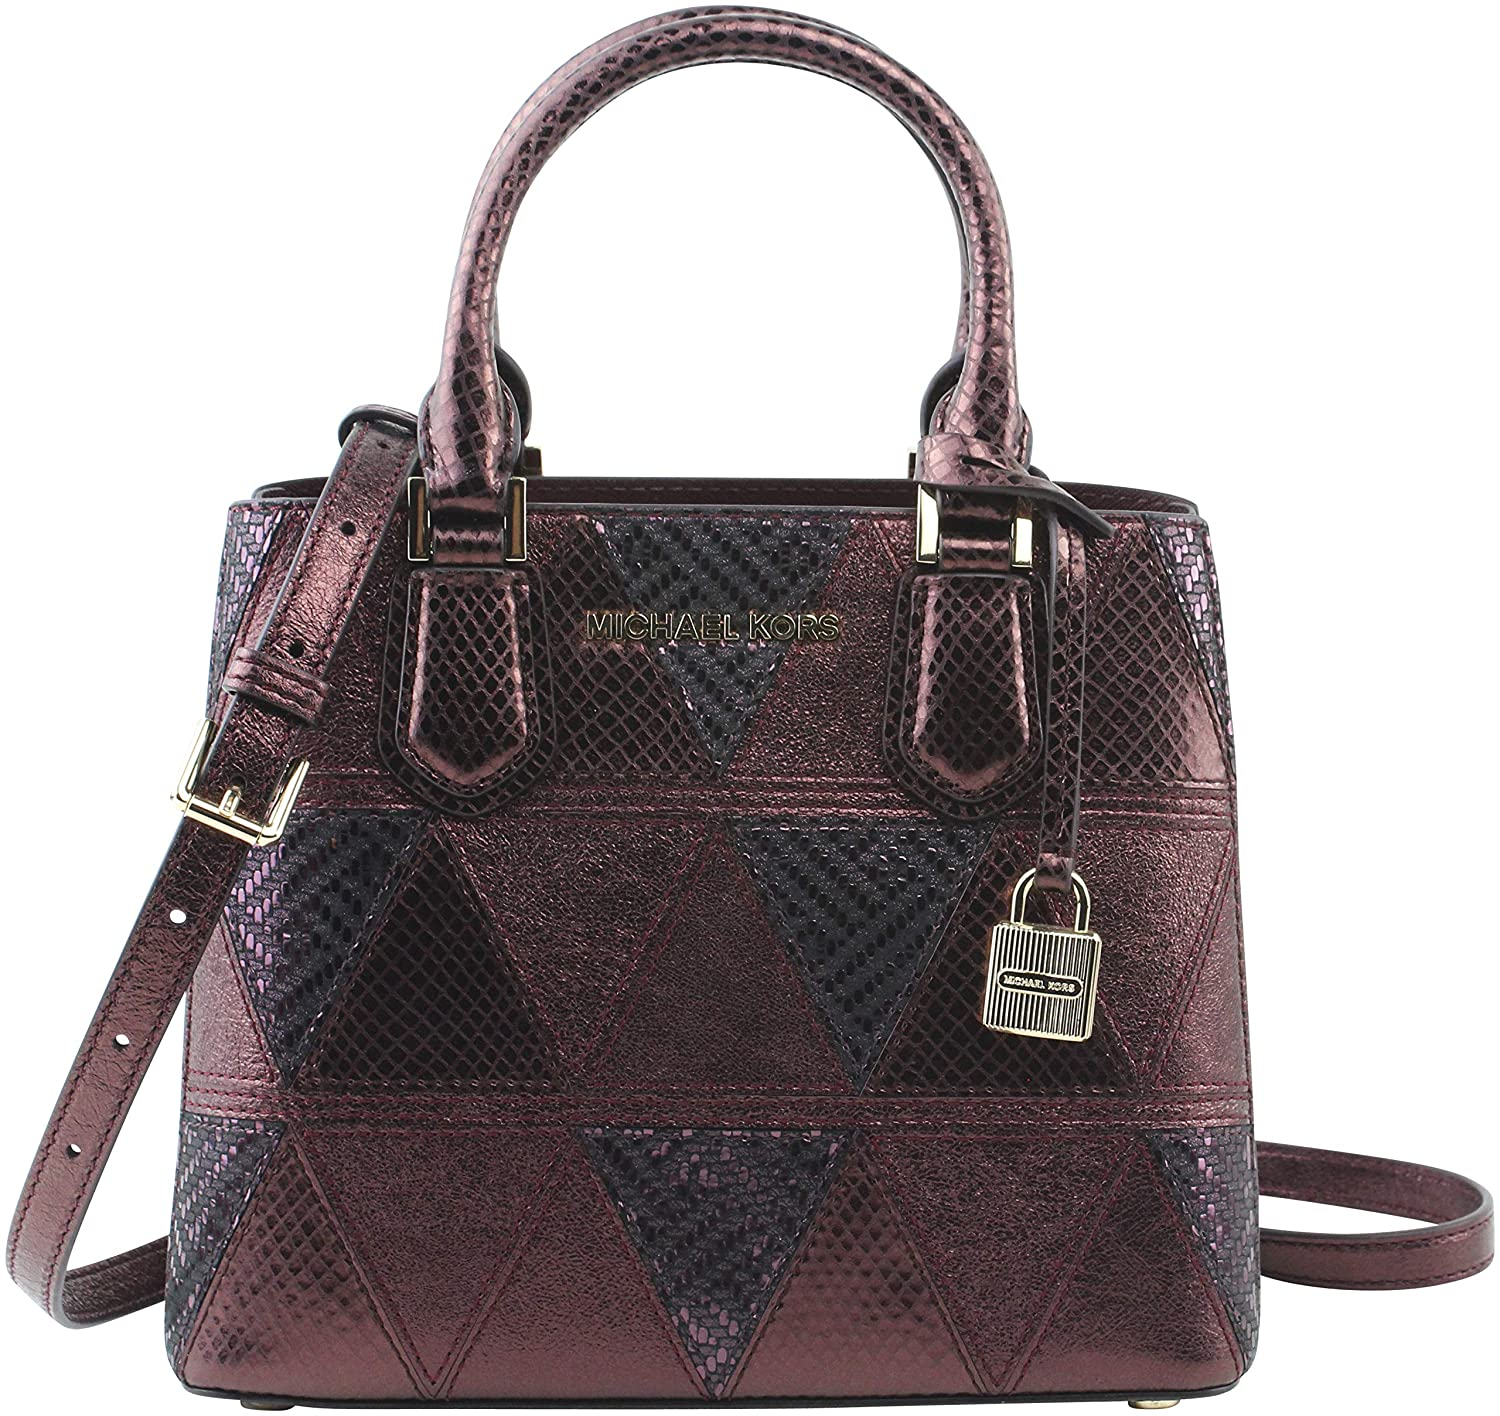 0ff2025a44958d MICHAEL Michael Kors Women's Adele Medium Dome Cross-body Bag in Metallic  Merlot Leather, Style 35H8GAFM6K: Amazon.co.uk: Shoes & Bags